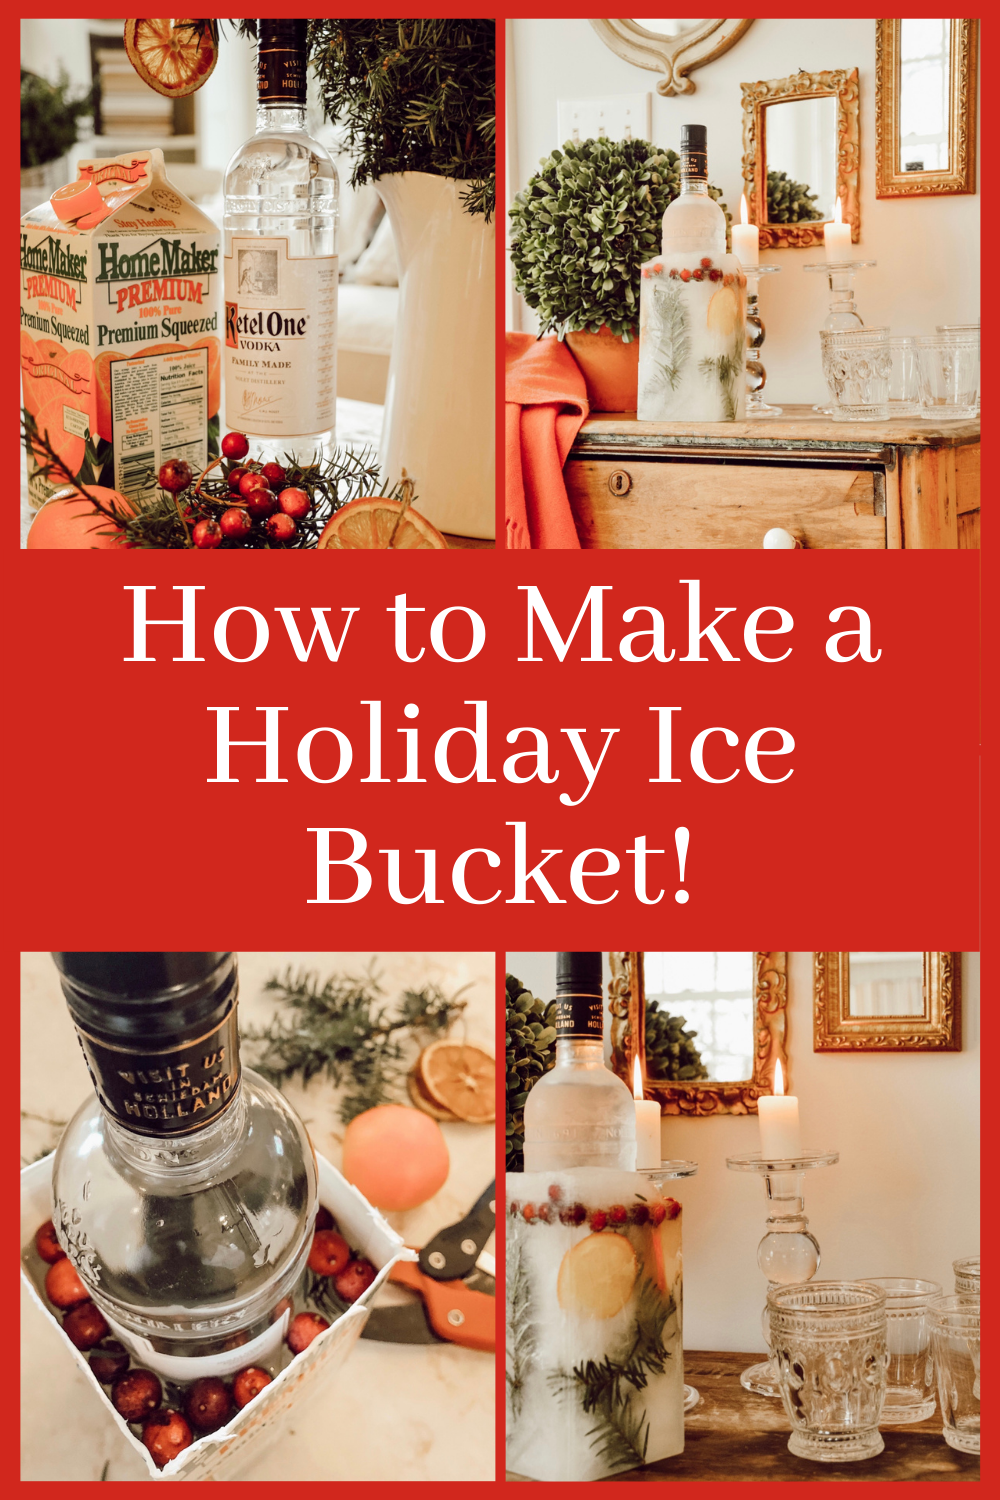 How to Make a Holiday Ice Bucket